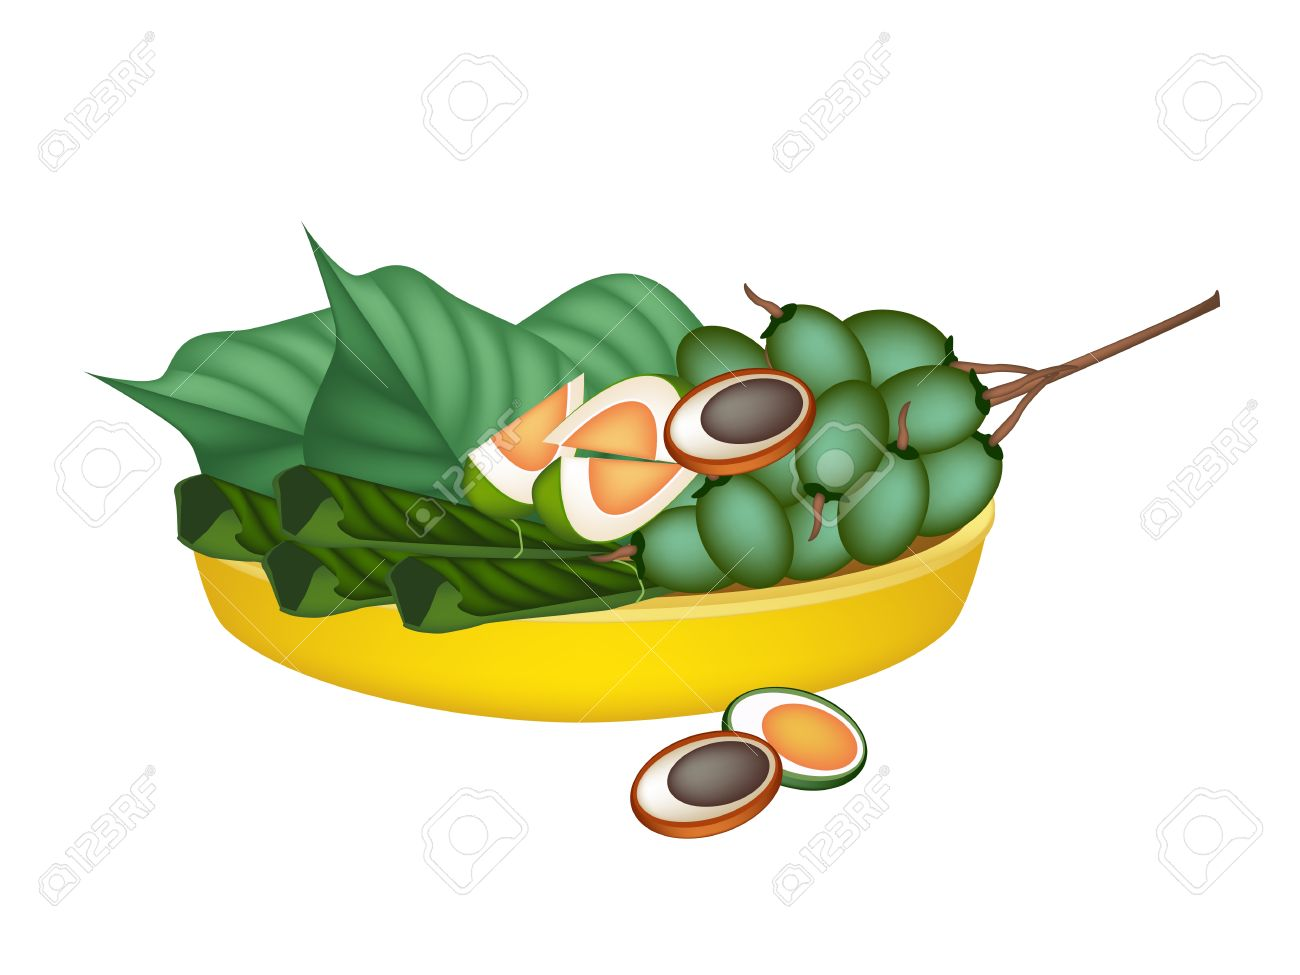 An Illustration Of Ripe Areca Nut Chewed With Betel Leaves On.